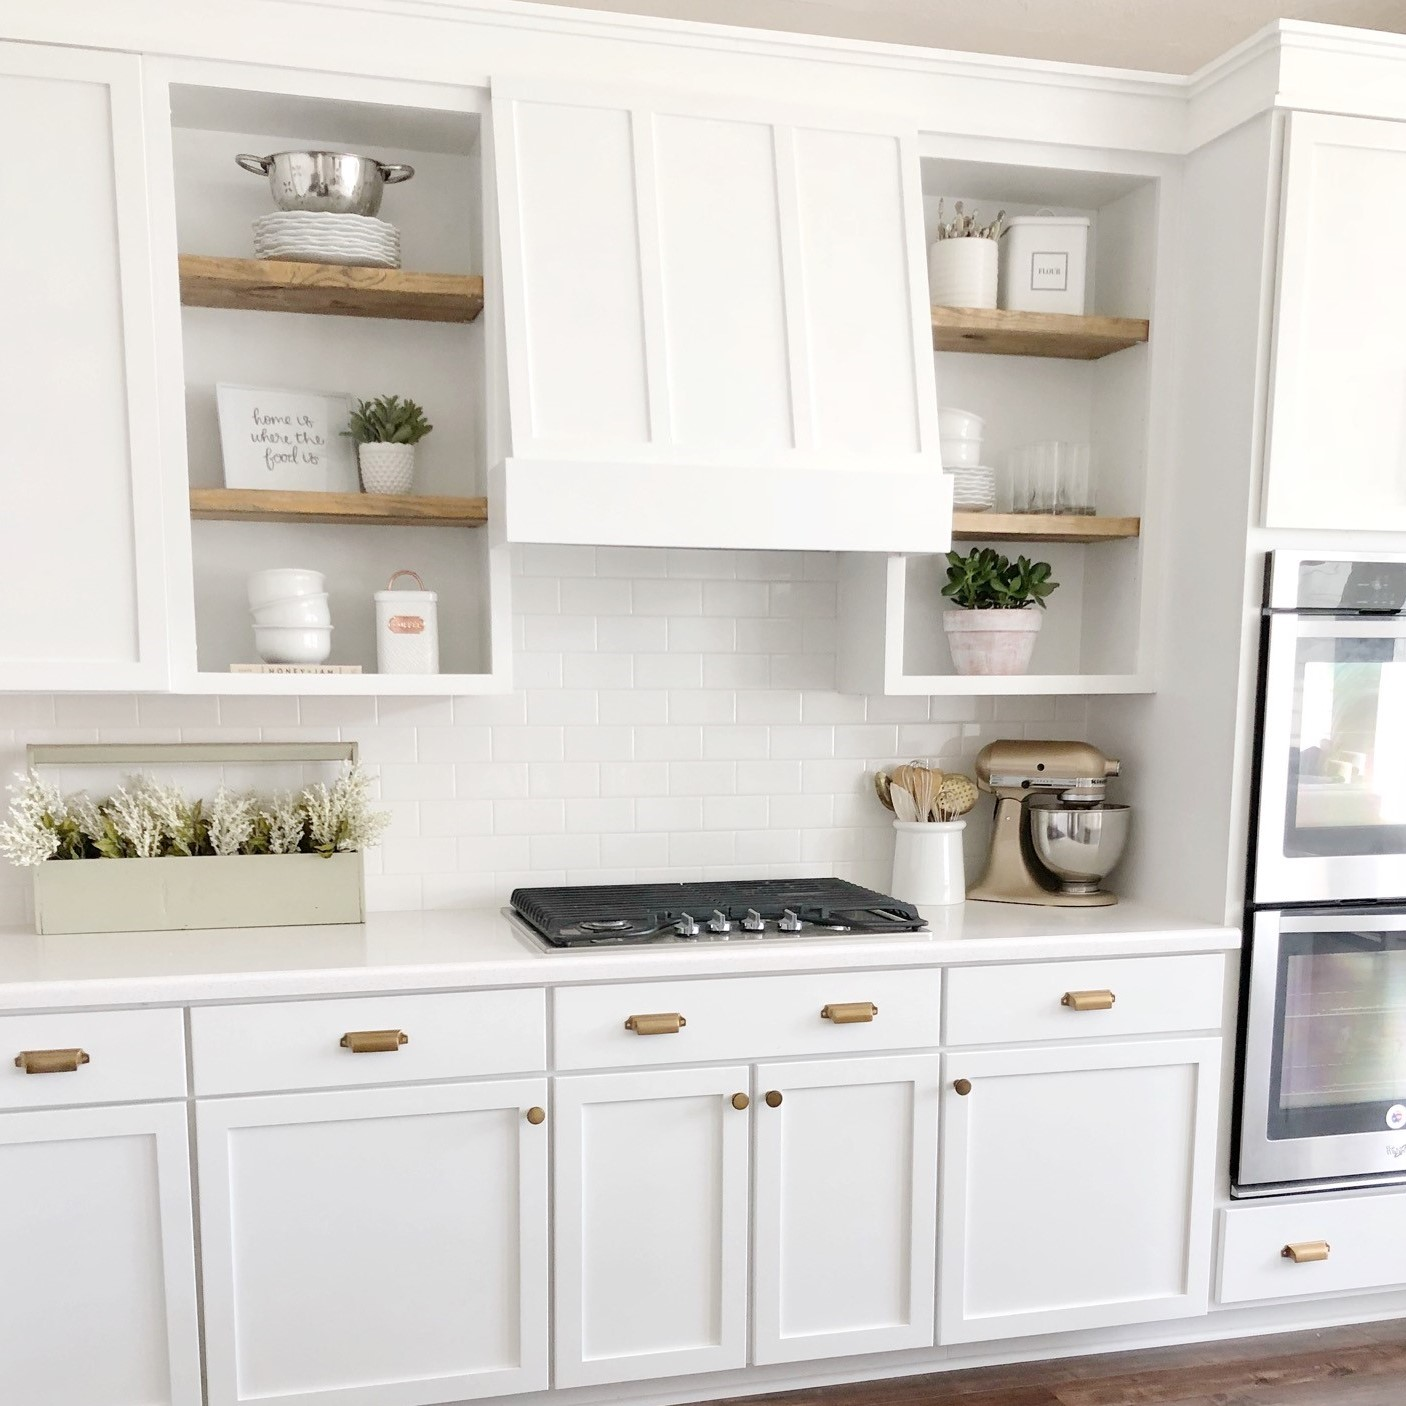 DIY kitchen vent hood and cabinet molding - The Blooming Nest